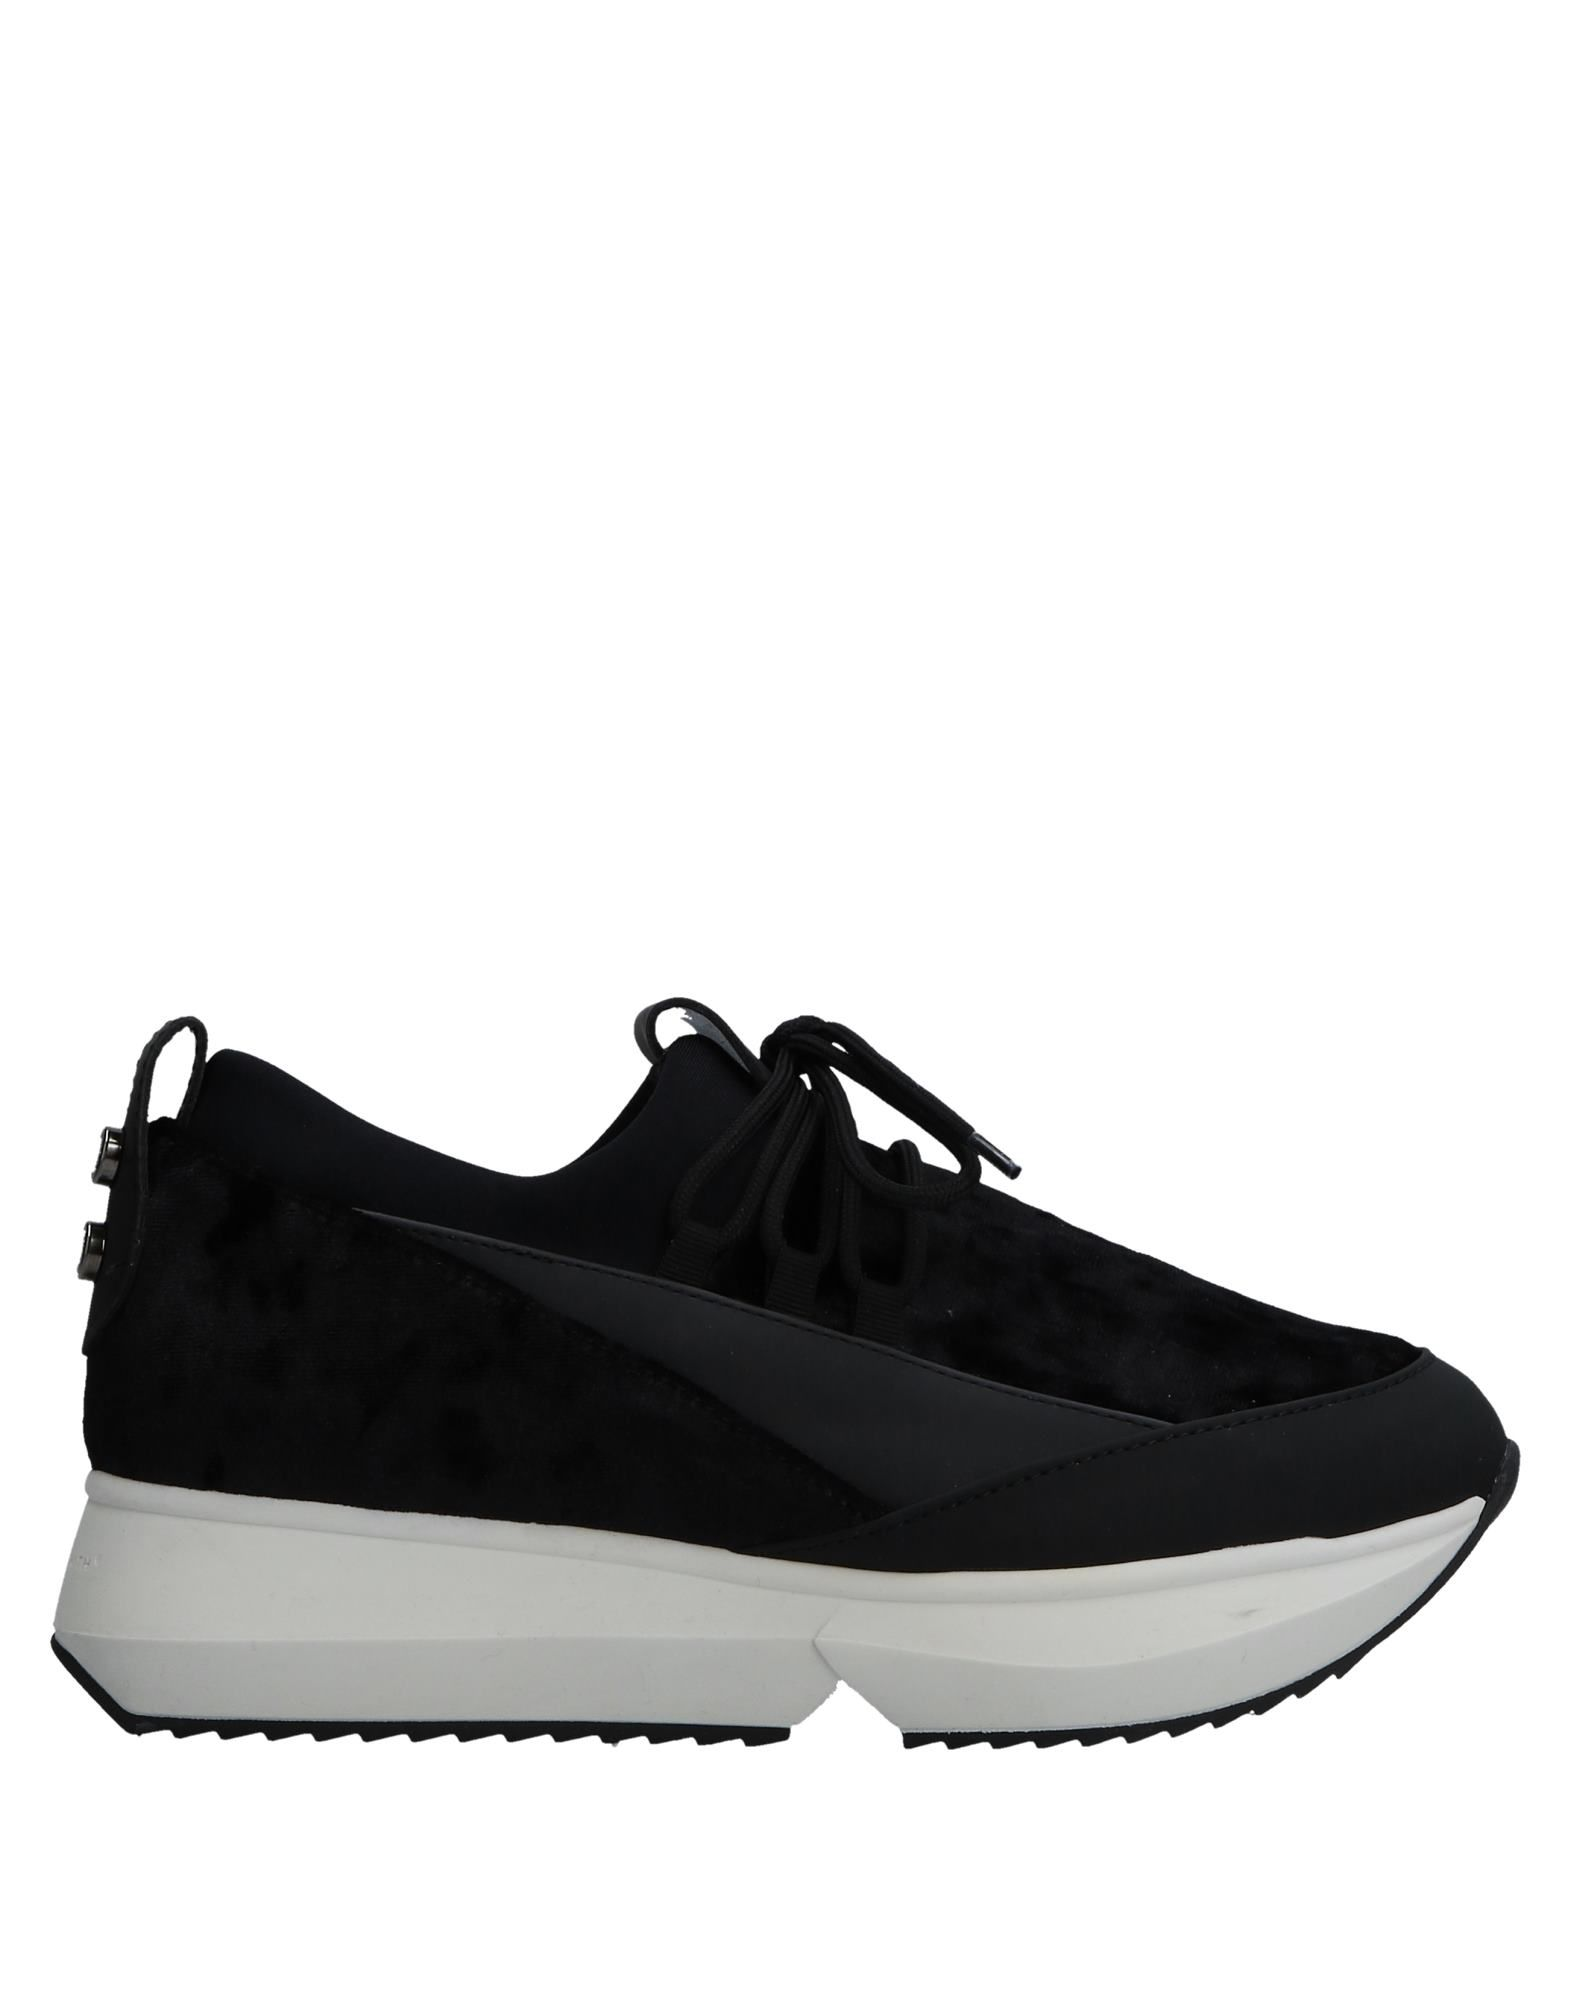 Sneakers Alexander Smith Donna - 11527142IB